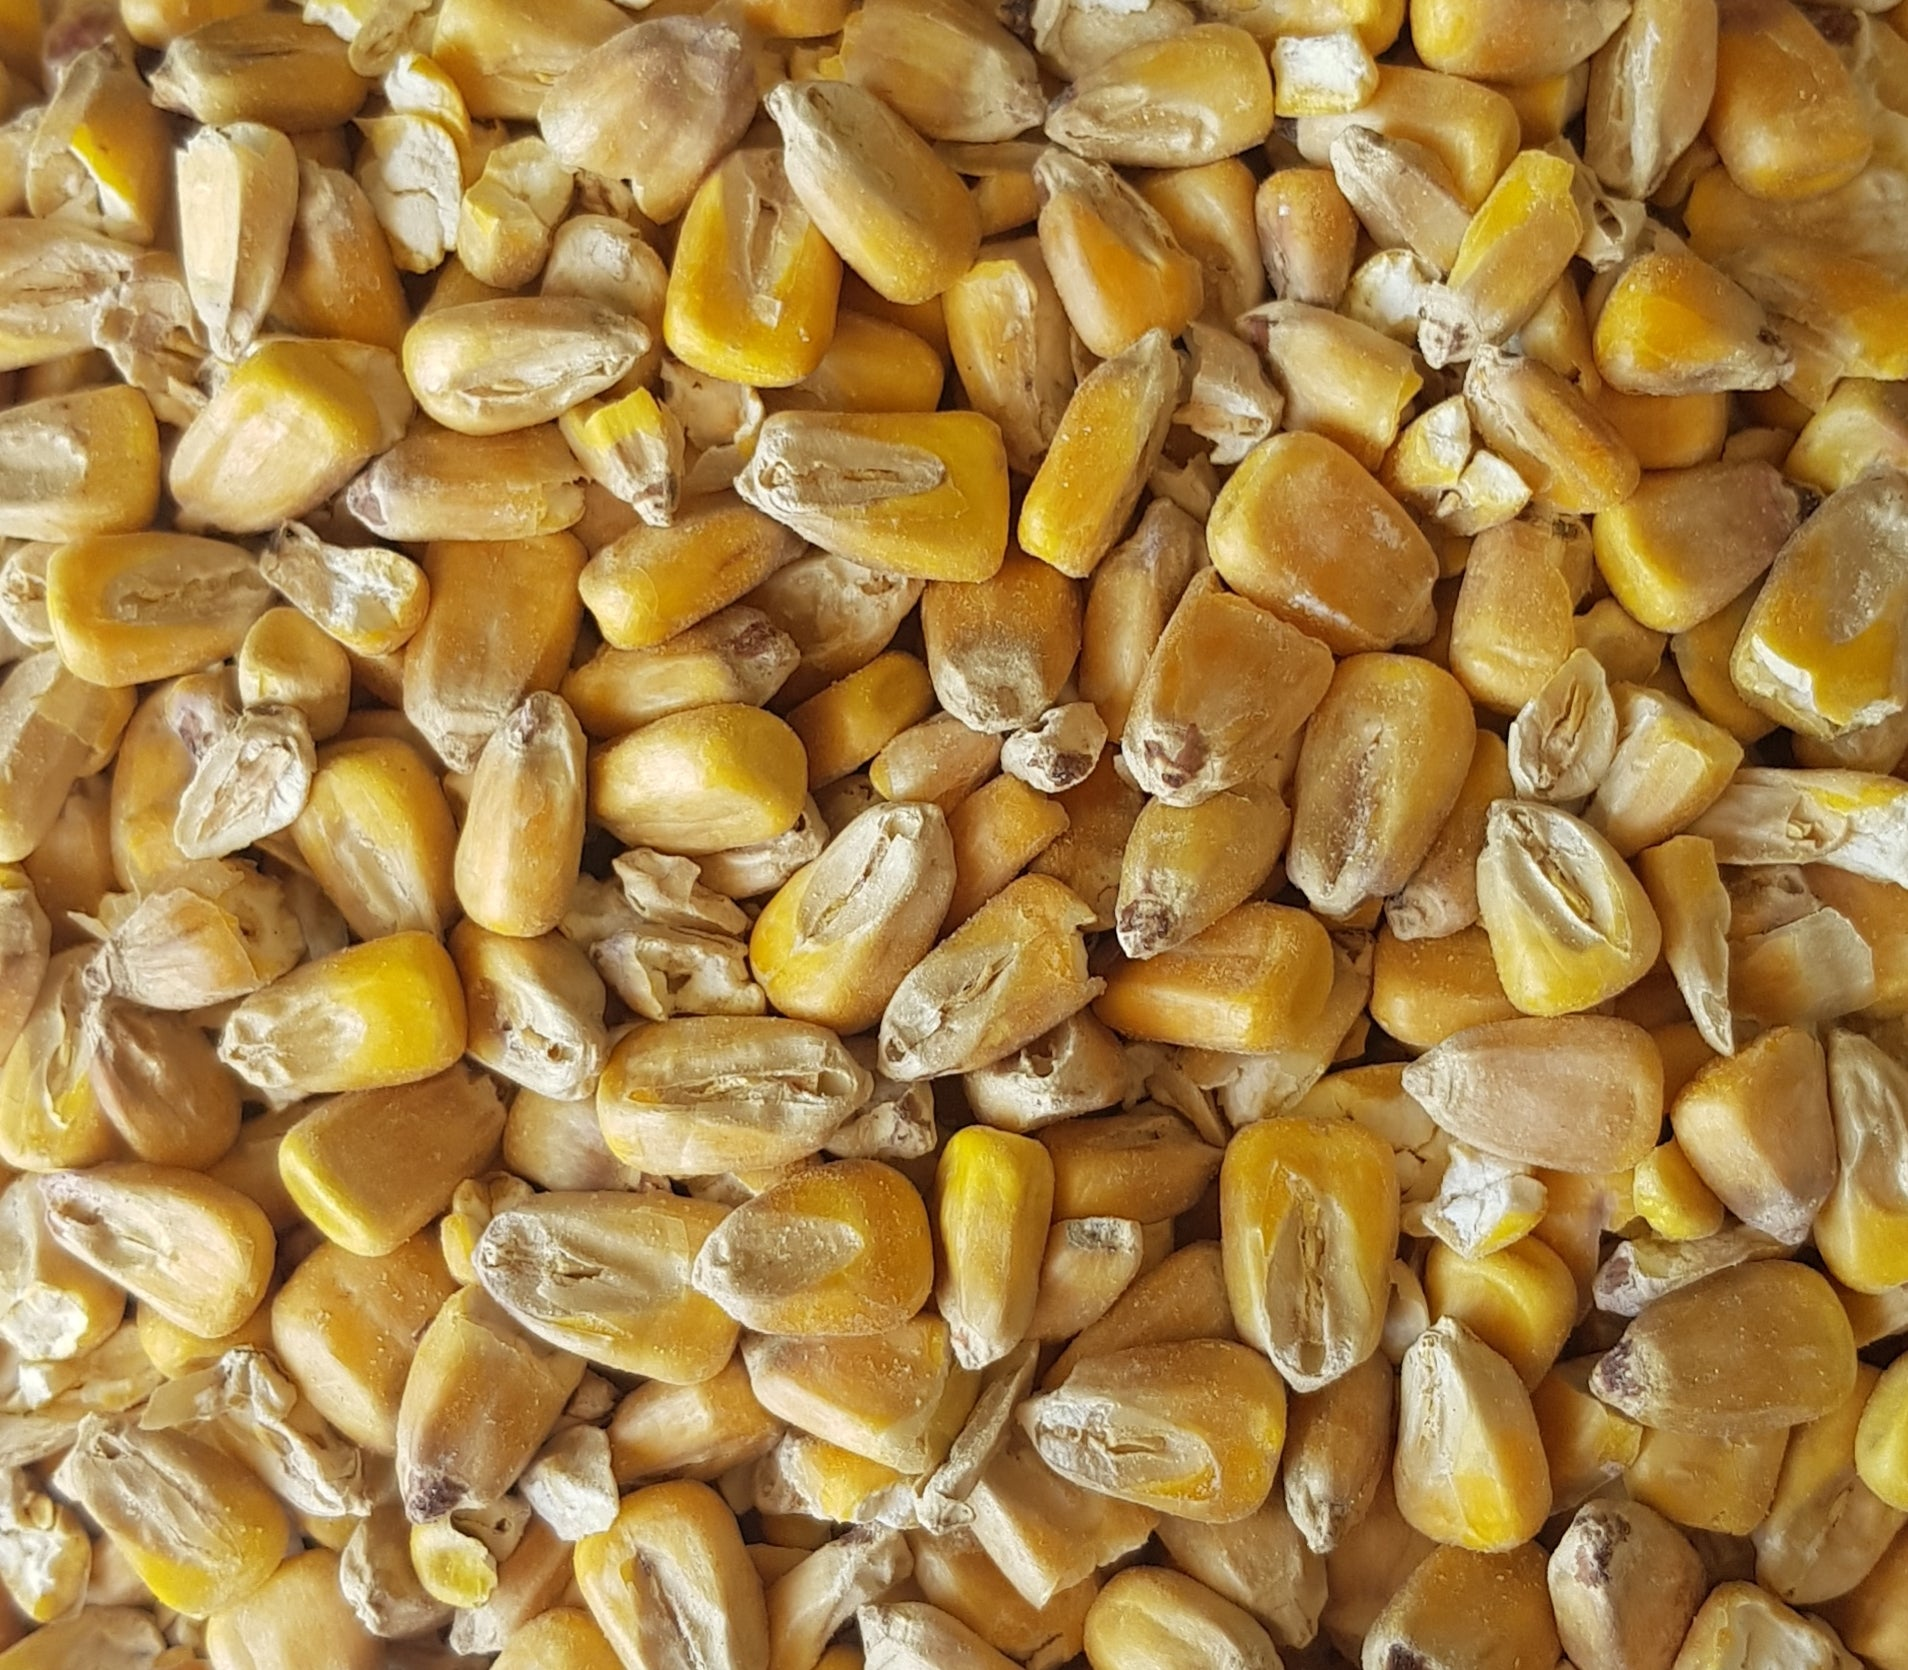 Gladfield Maize Malt